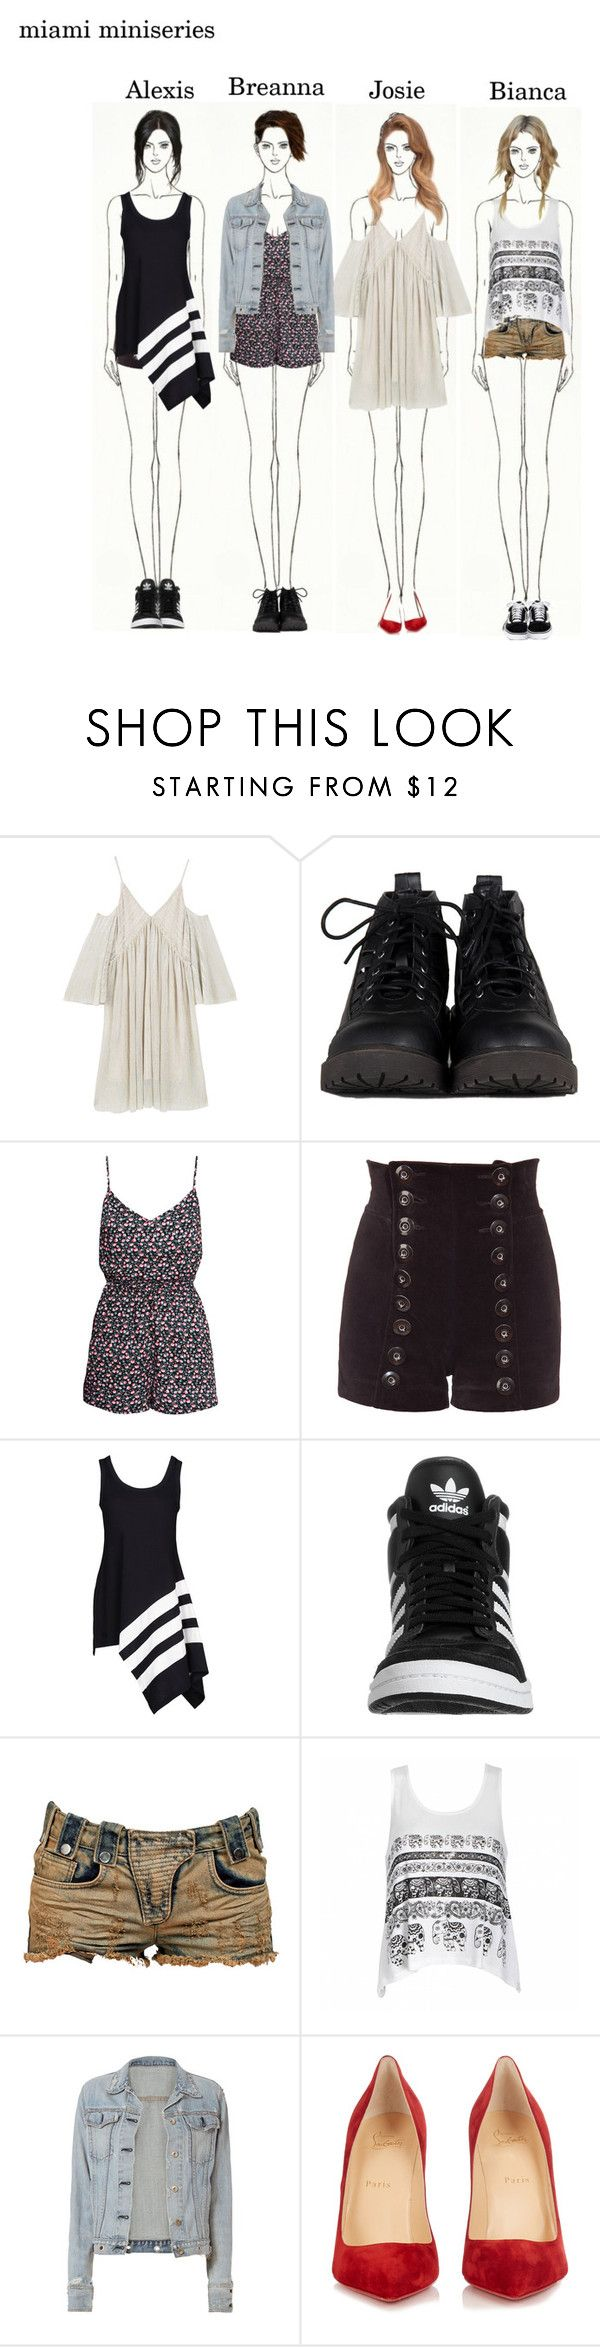 """Girls in Miami: Josie Is Da Worst"" by heymishiehere ❤ liked on Polyvore featuring MANGO, H&M, Tamara Barnoff, Y-3, adidas Originals, Pierre Balmain, Ally Fashion, rag & bone, Christian Louboutin and breannahollybrenton"